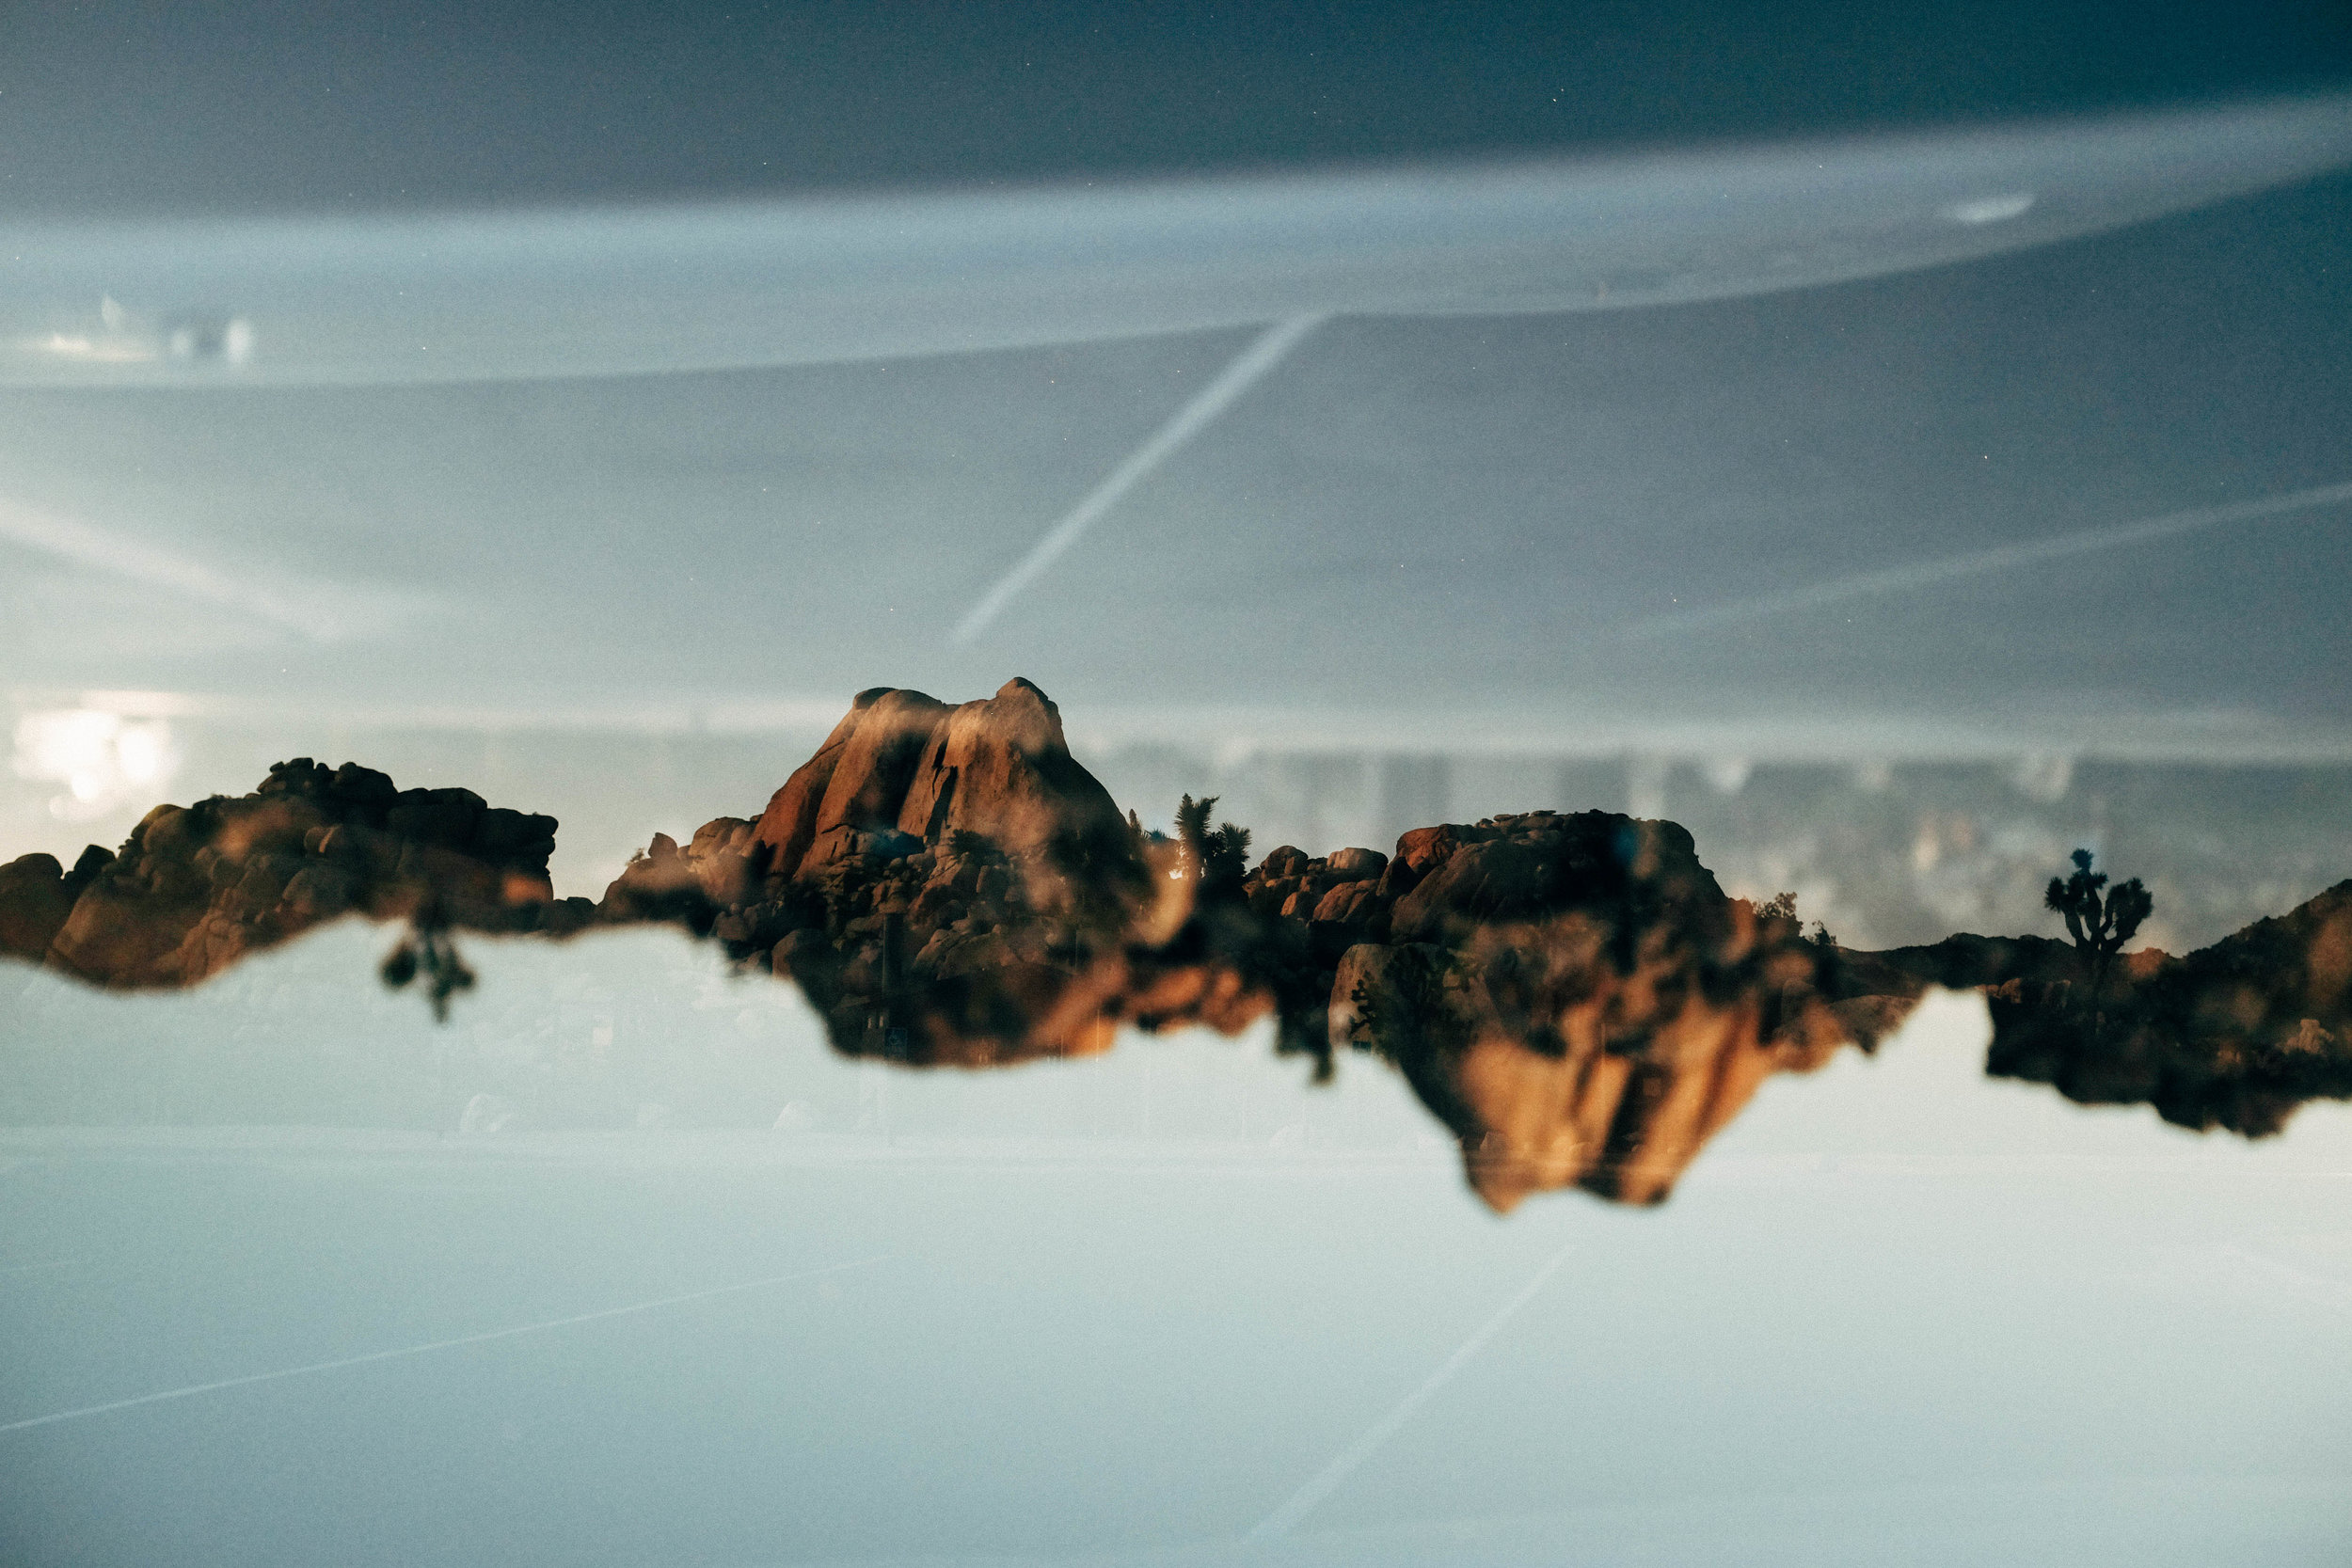 Trying out some double exposure functionality...